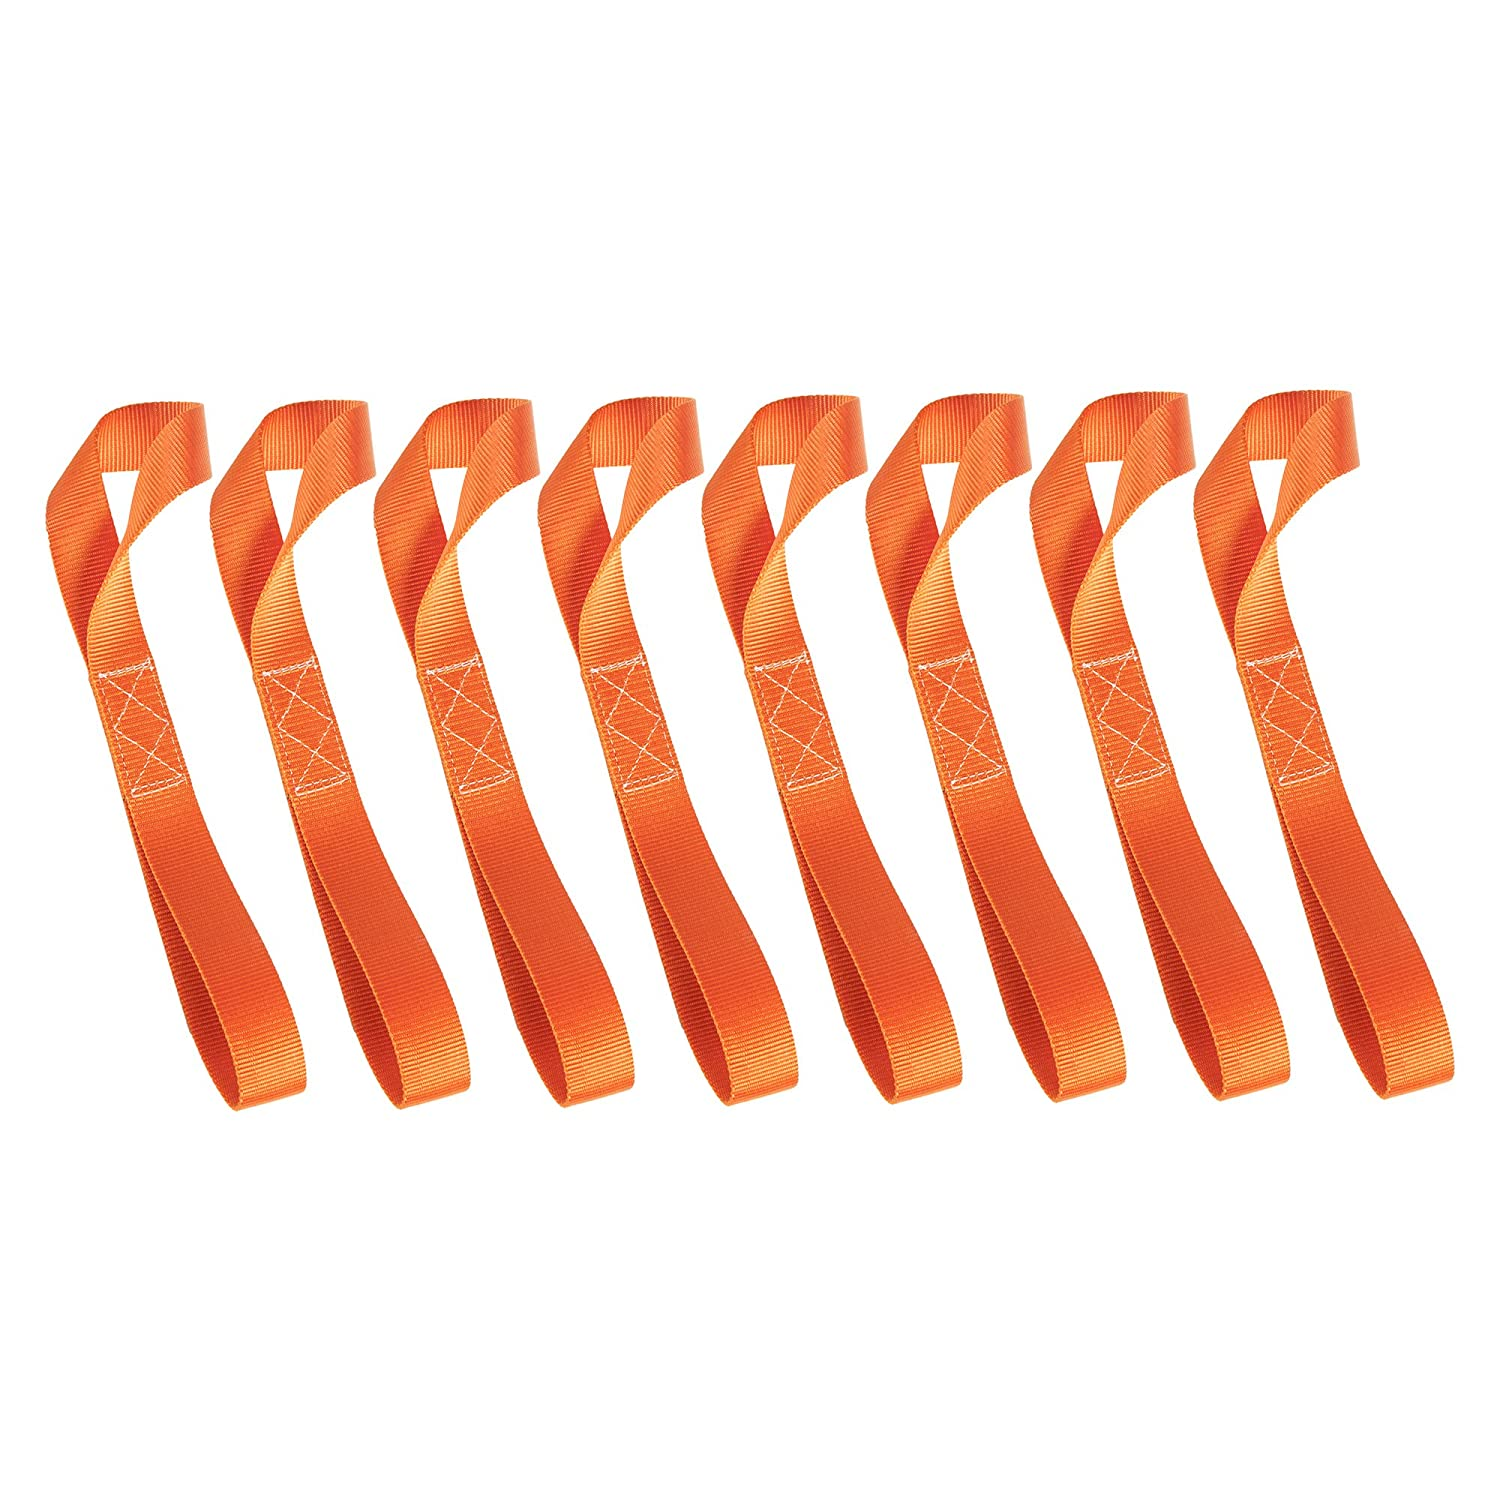 LITTOU 8 pcs 12 inch X 1 inch Soft Loops Tie Down Motorcycle Straps 2300 Lbs Break Strength Towing Ropes Prevent Scratches for Motorbike ATV UTV Dirt Bike Harley Heavy Duty - Orange